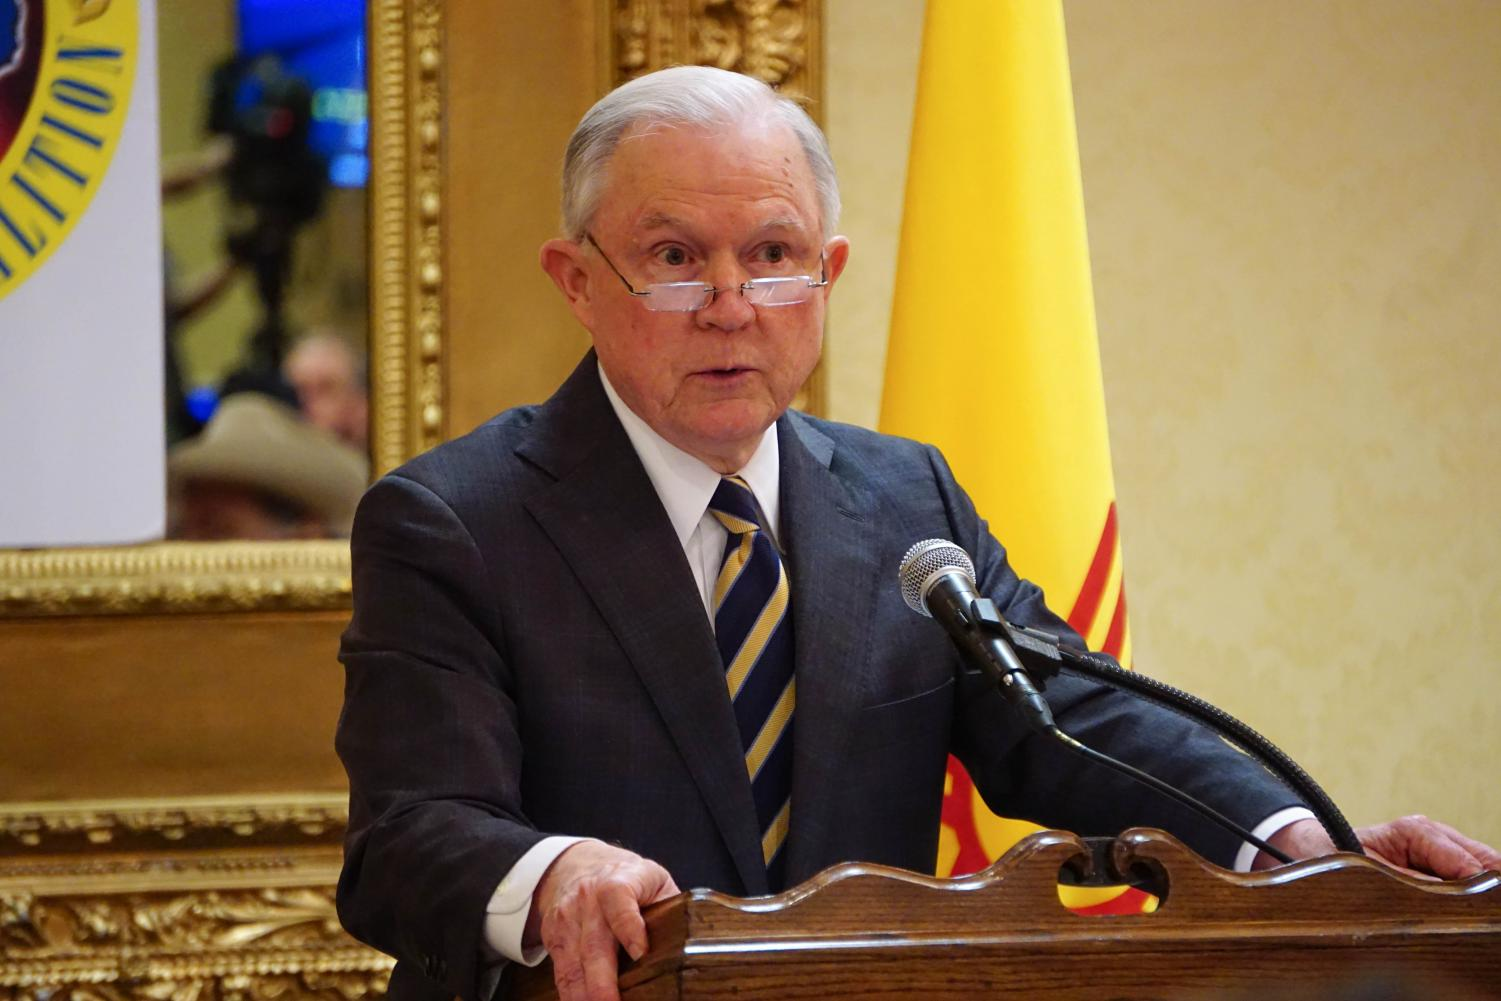 Attorney General Jeff Sessions speaks inside the Ramada Inn conference room Wednesday afternoon.